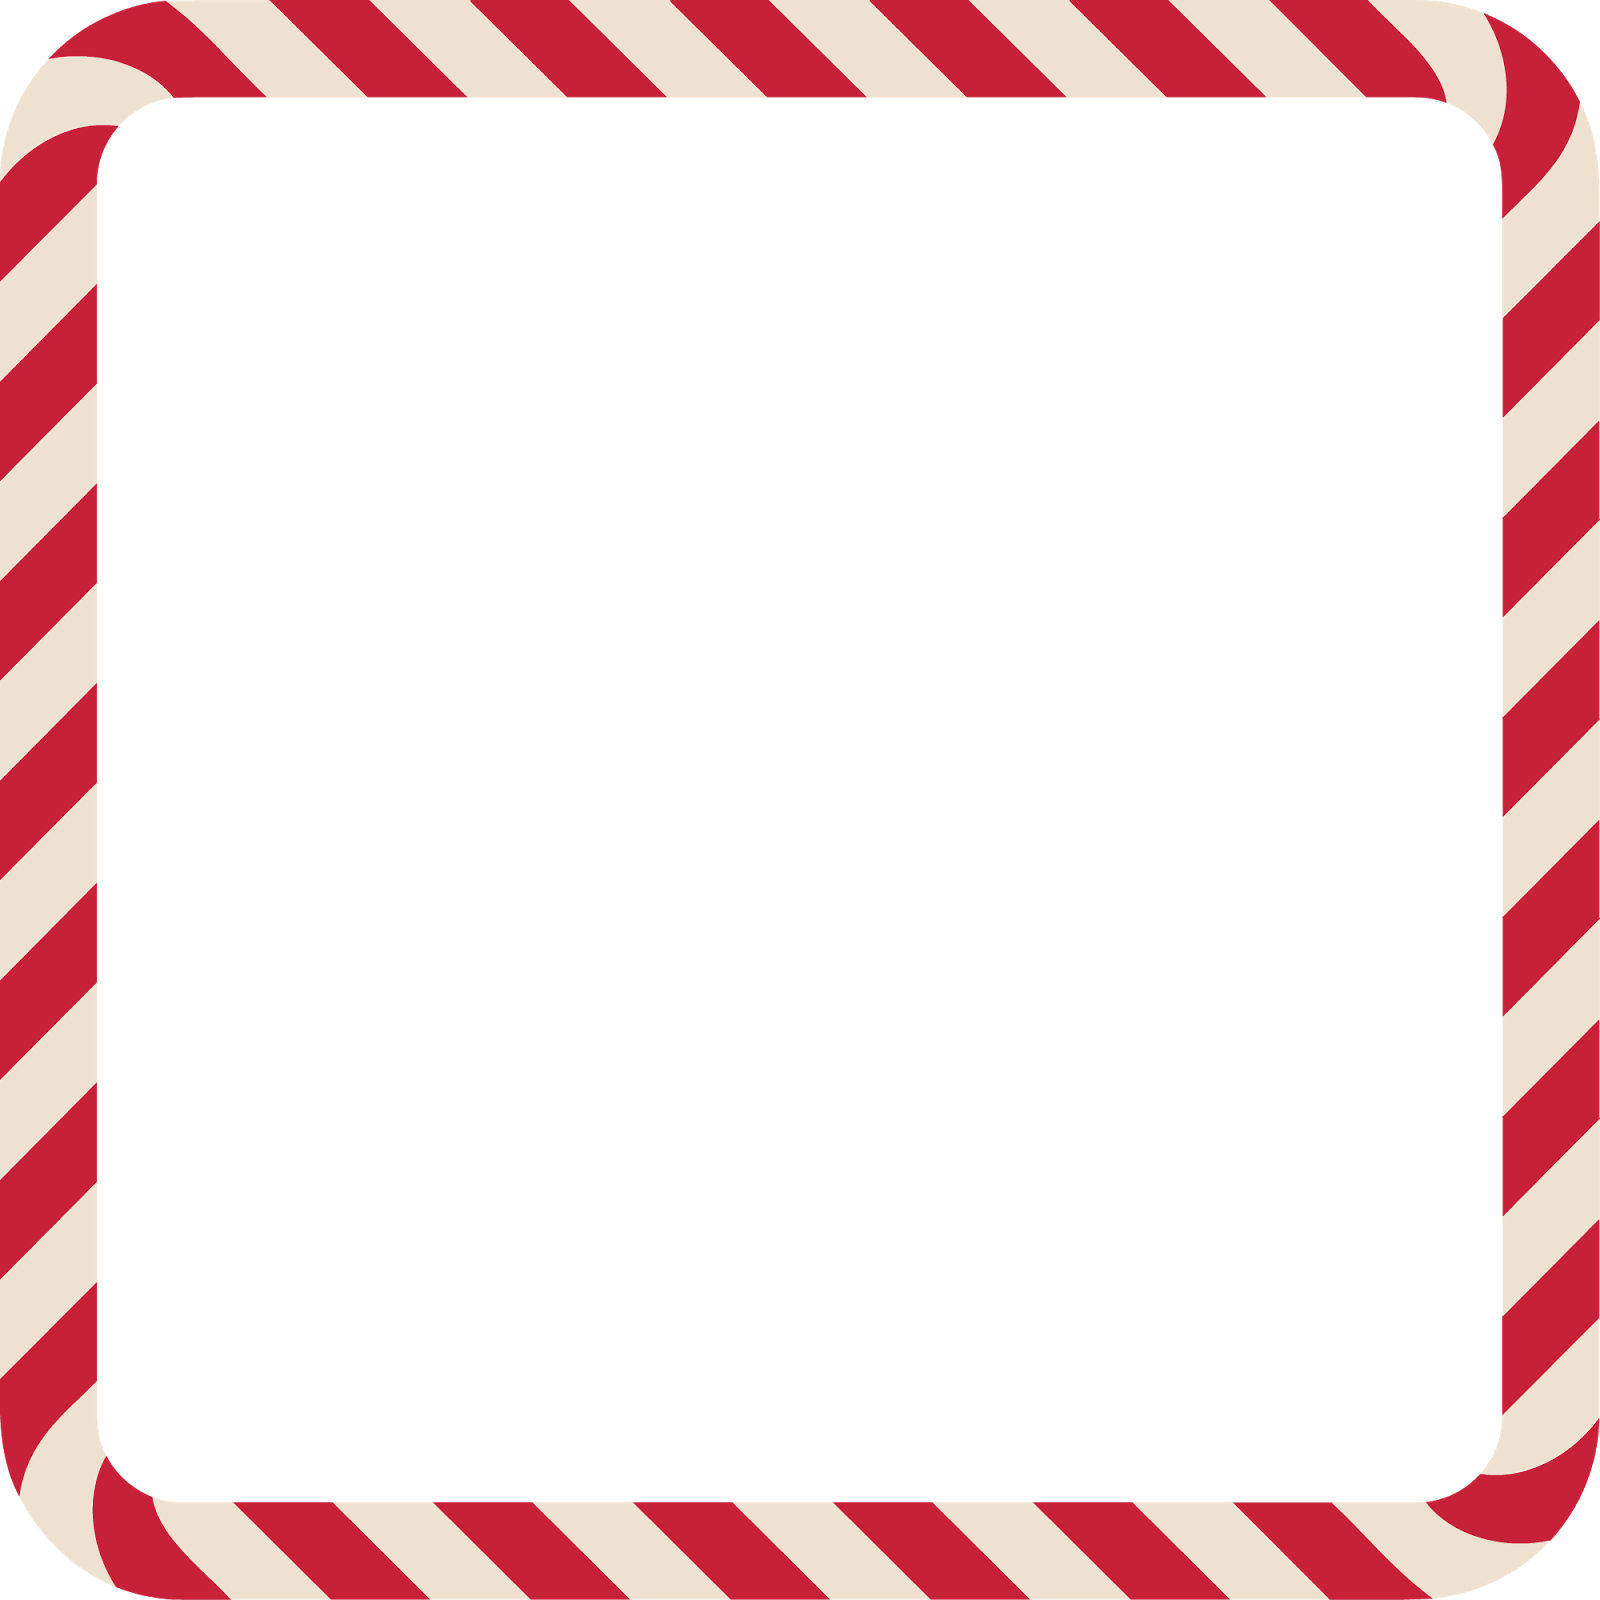 candy cane border png